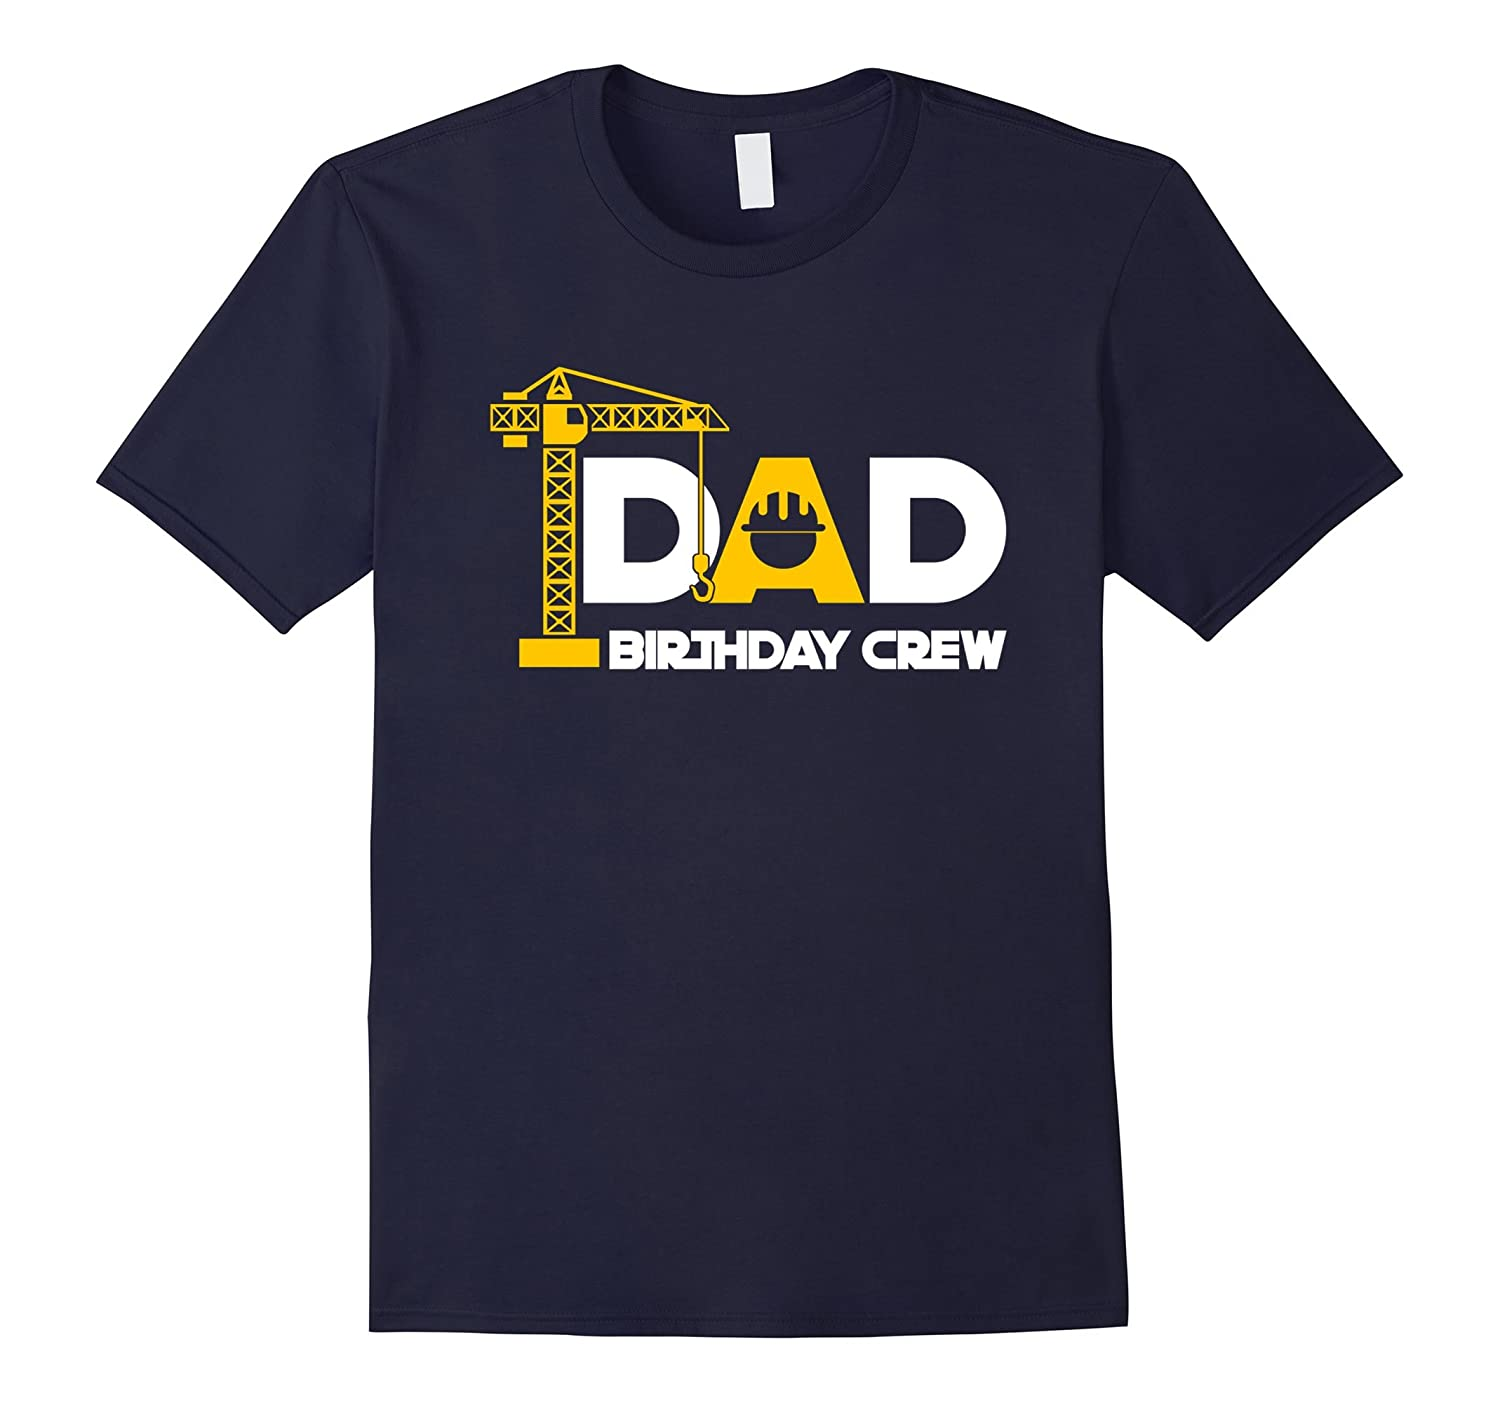 Dad Birthday Crew T Shirt - Funny Construction Birthday-Art